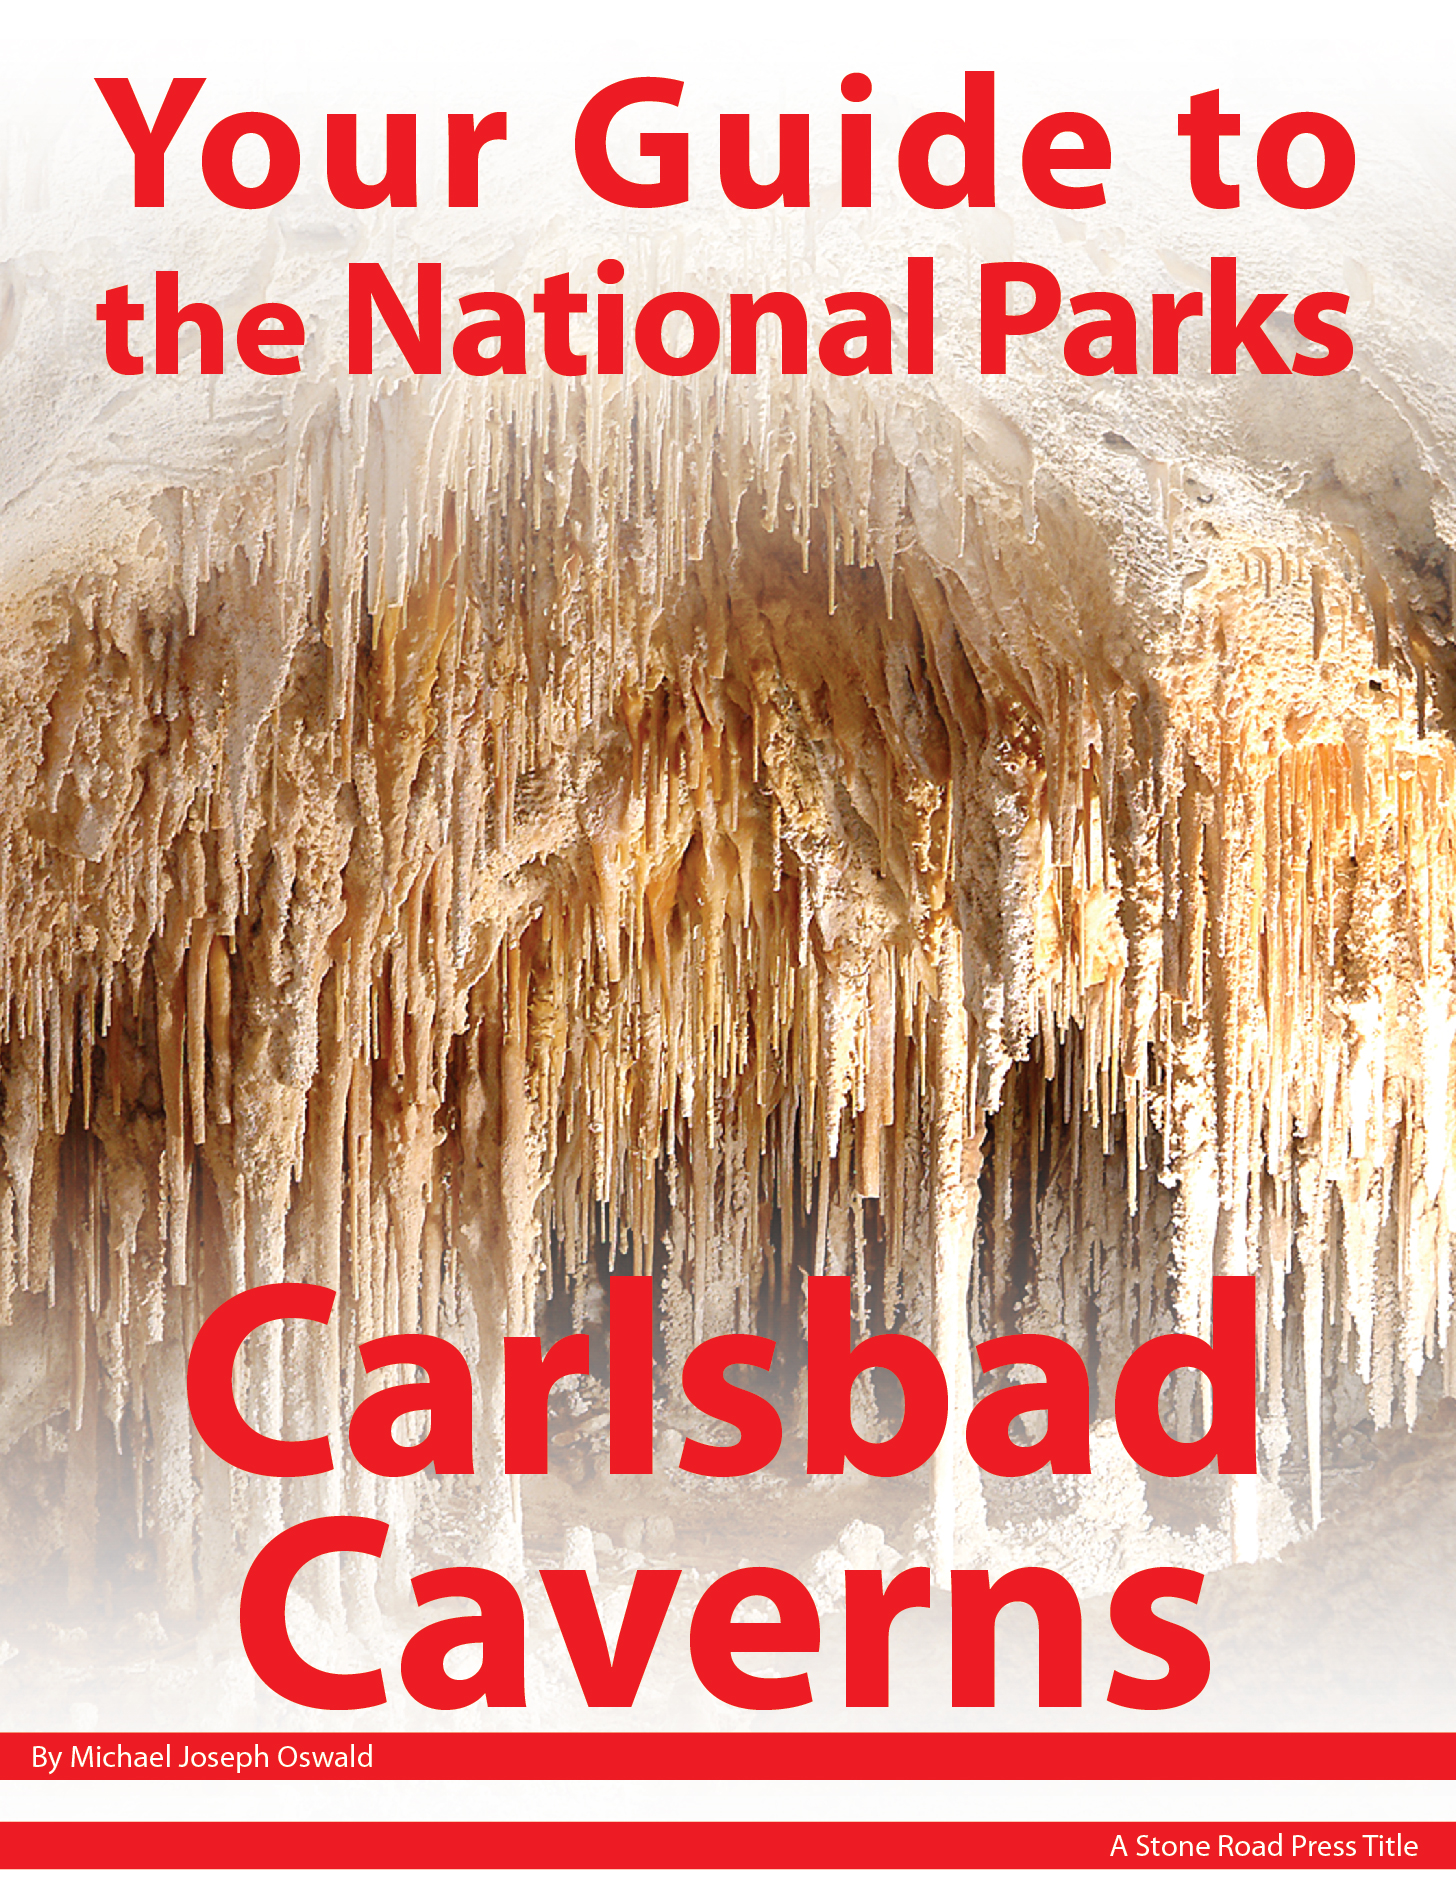 Your Guide to Carlsbad Caverns National Park By: Michael Joseph Oswald